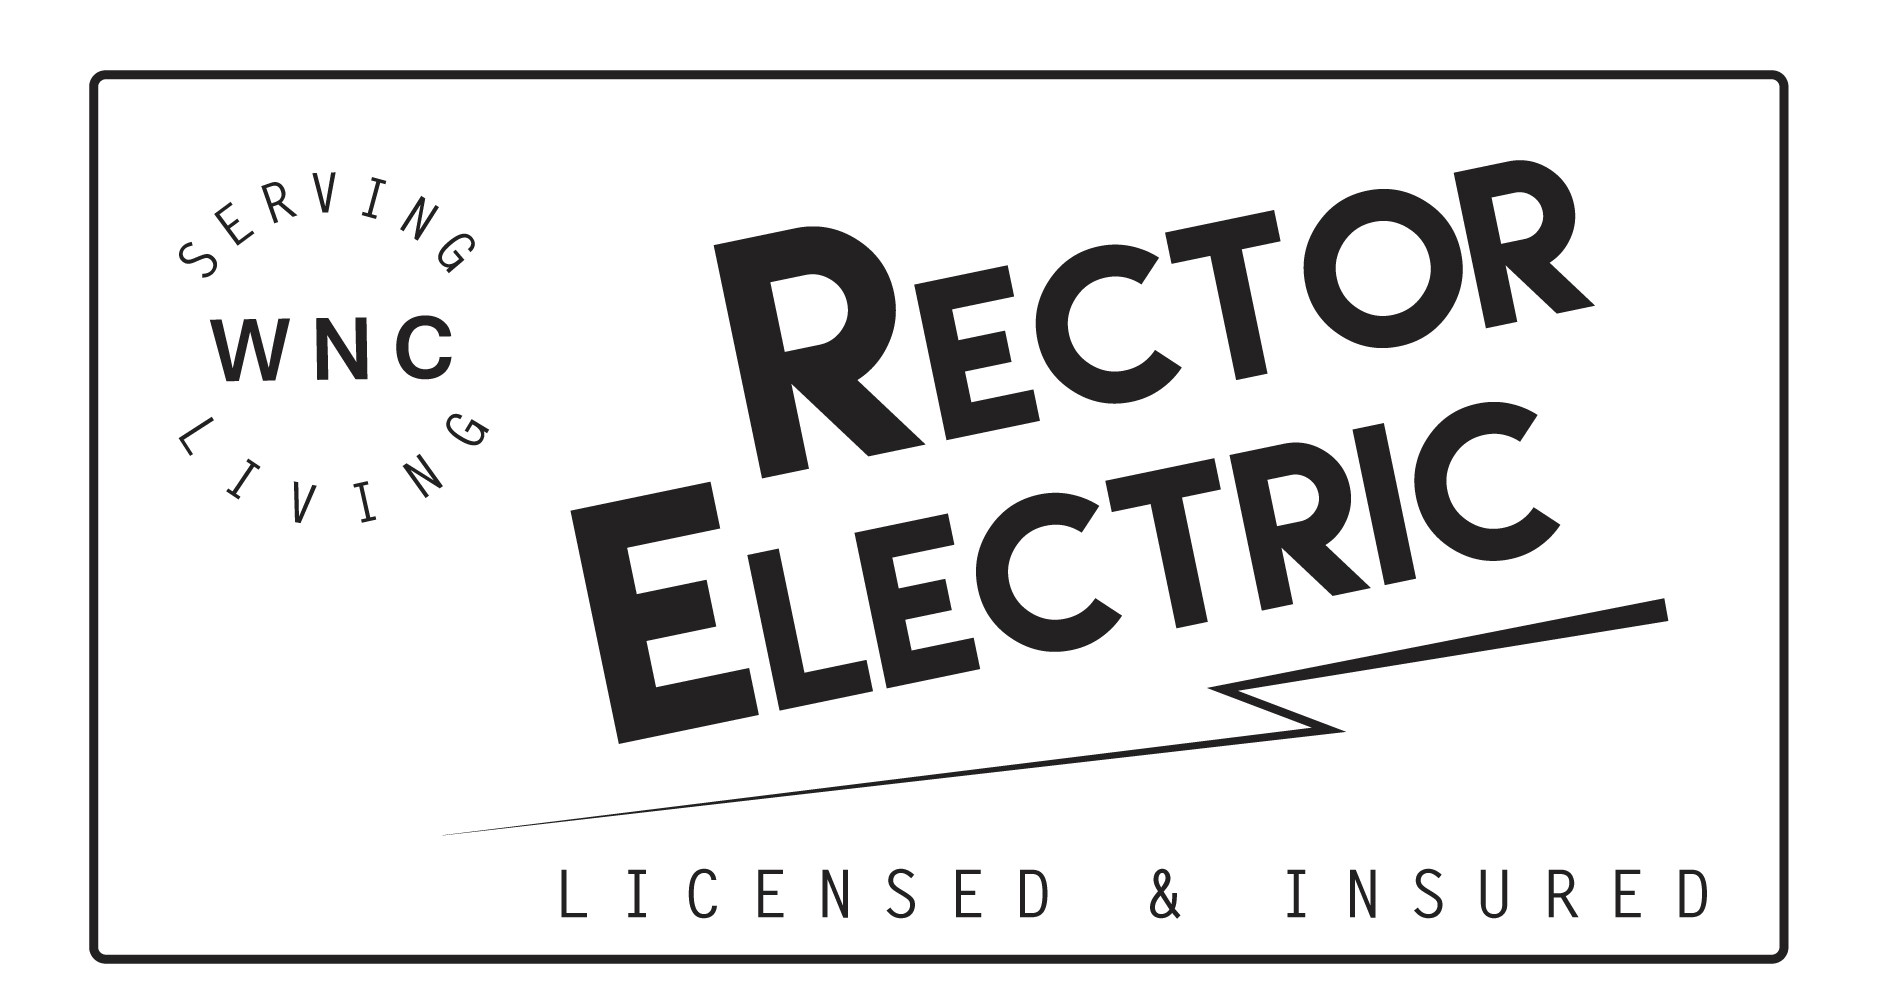 Rector Electric